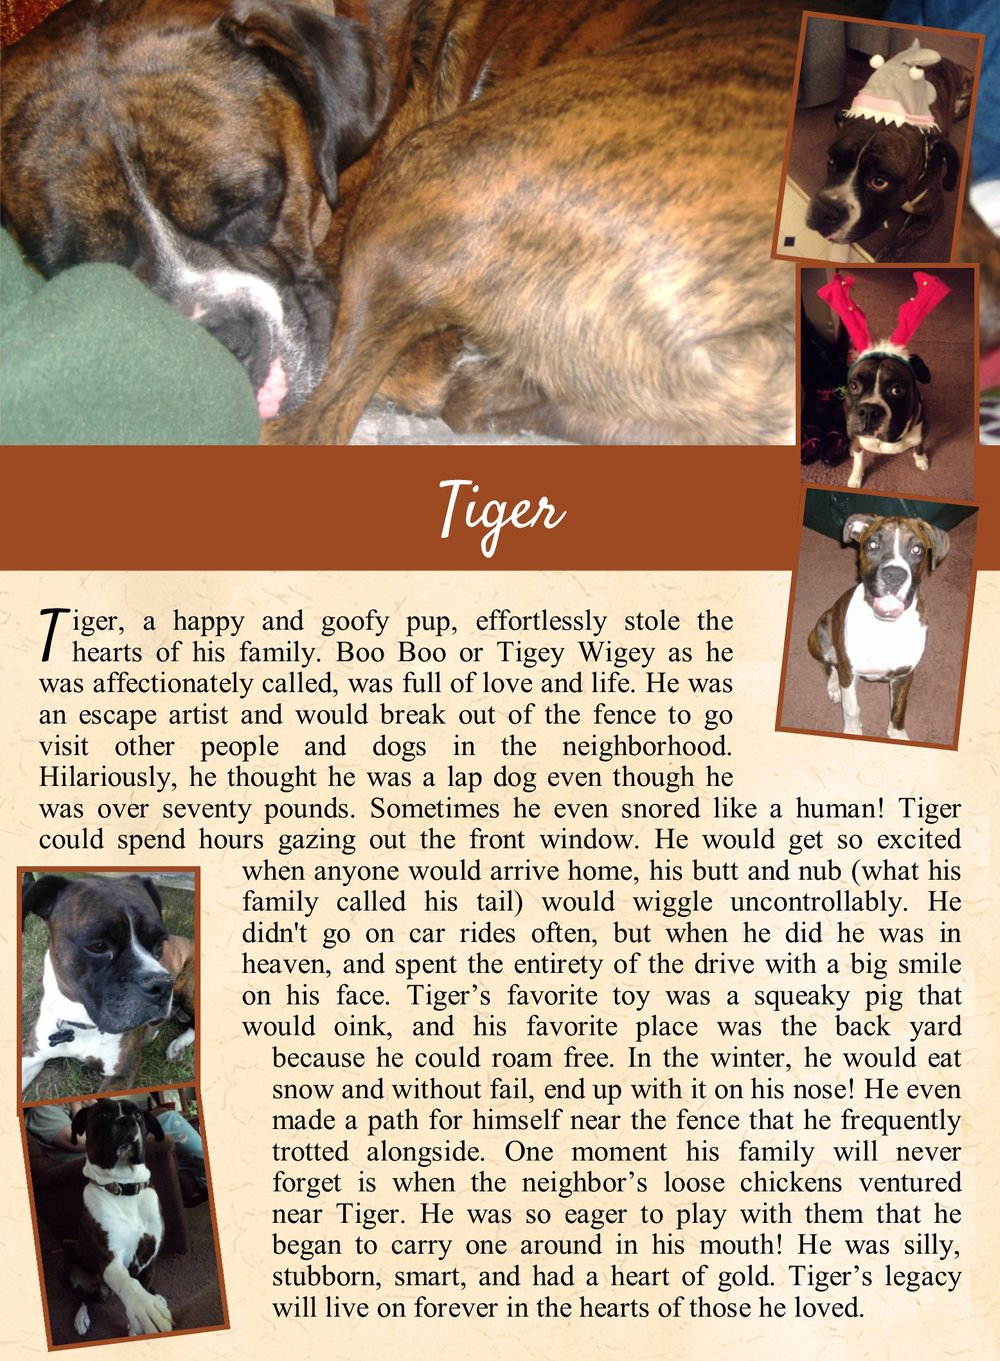 Tiger's Life Tail